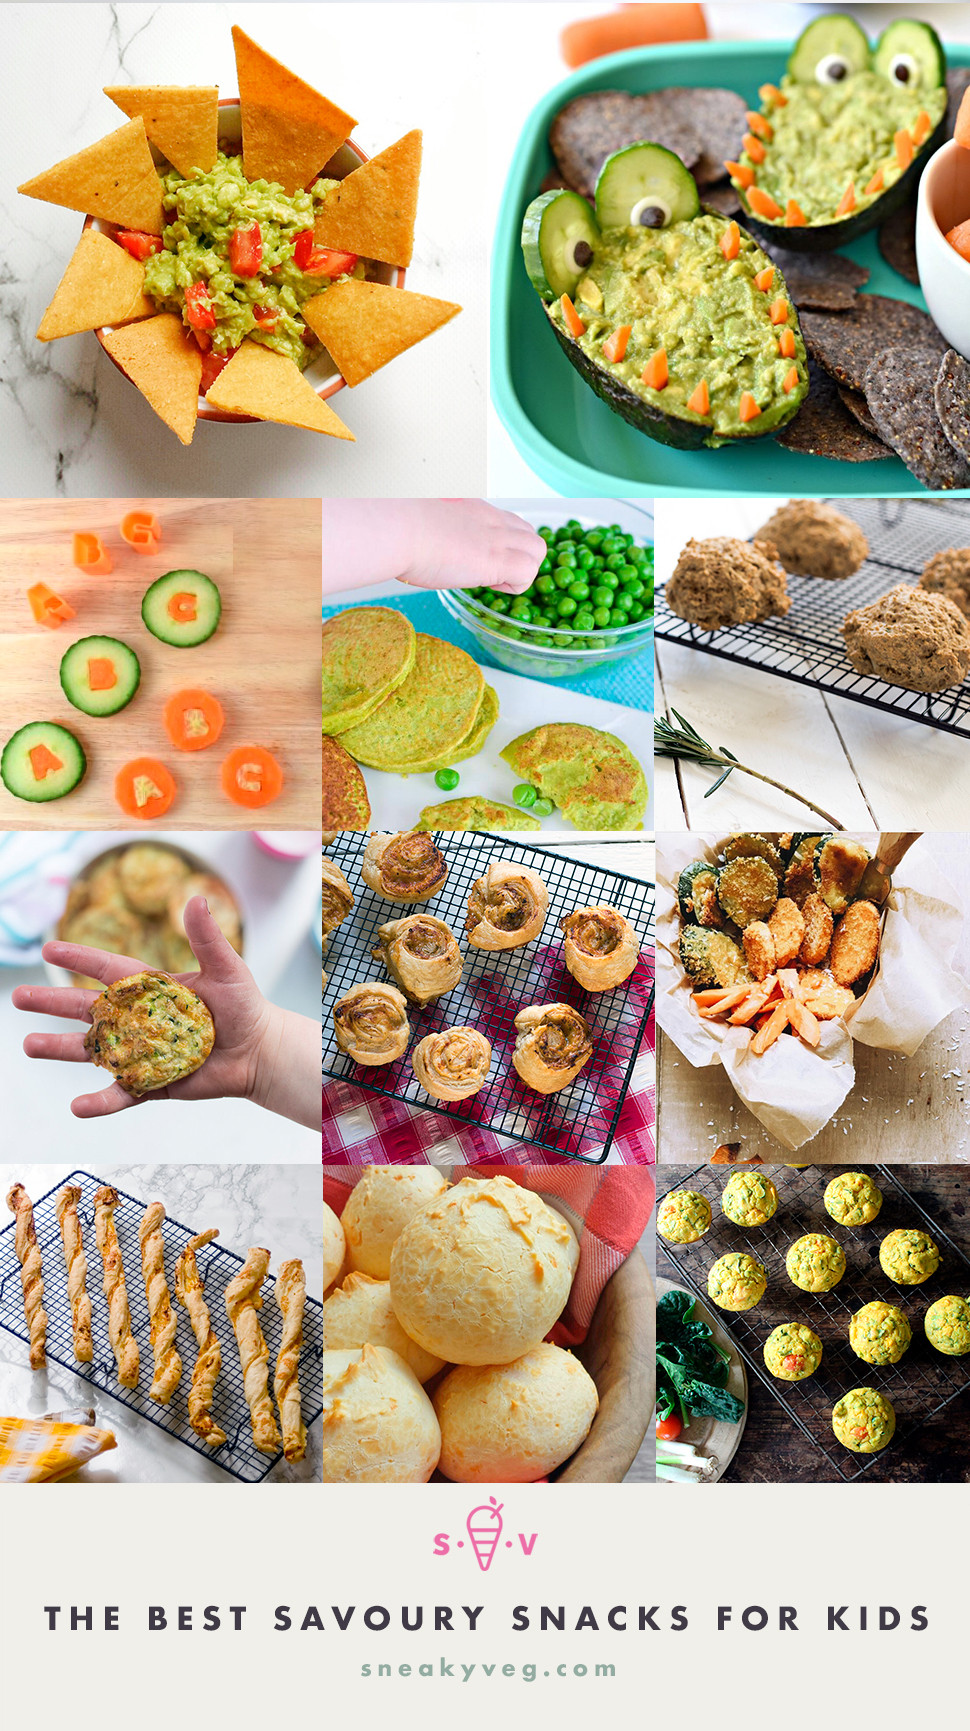 Healthy Savory Snacks  The best healthy savoury snacks for kids Sneaky Veg